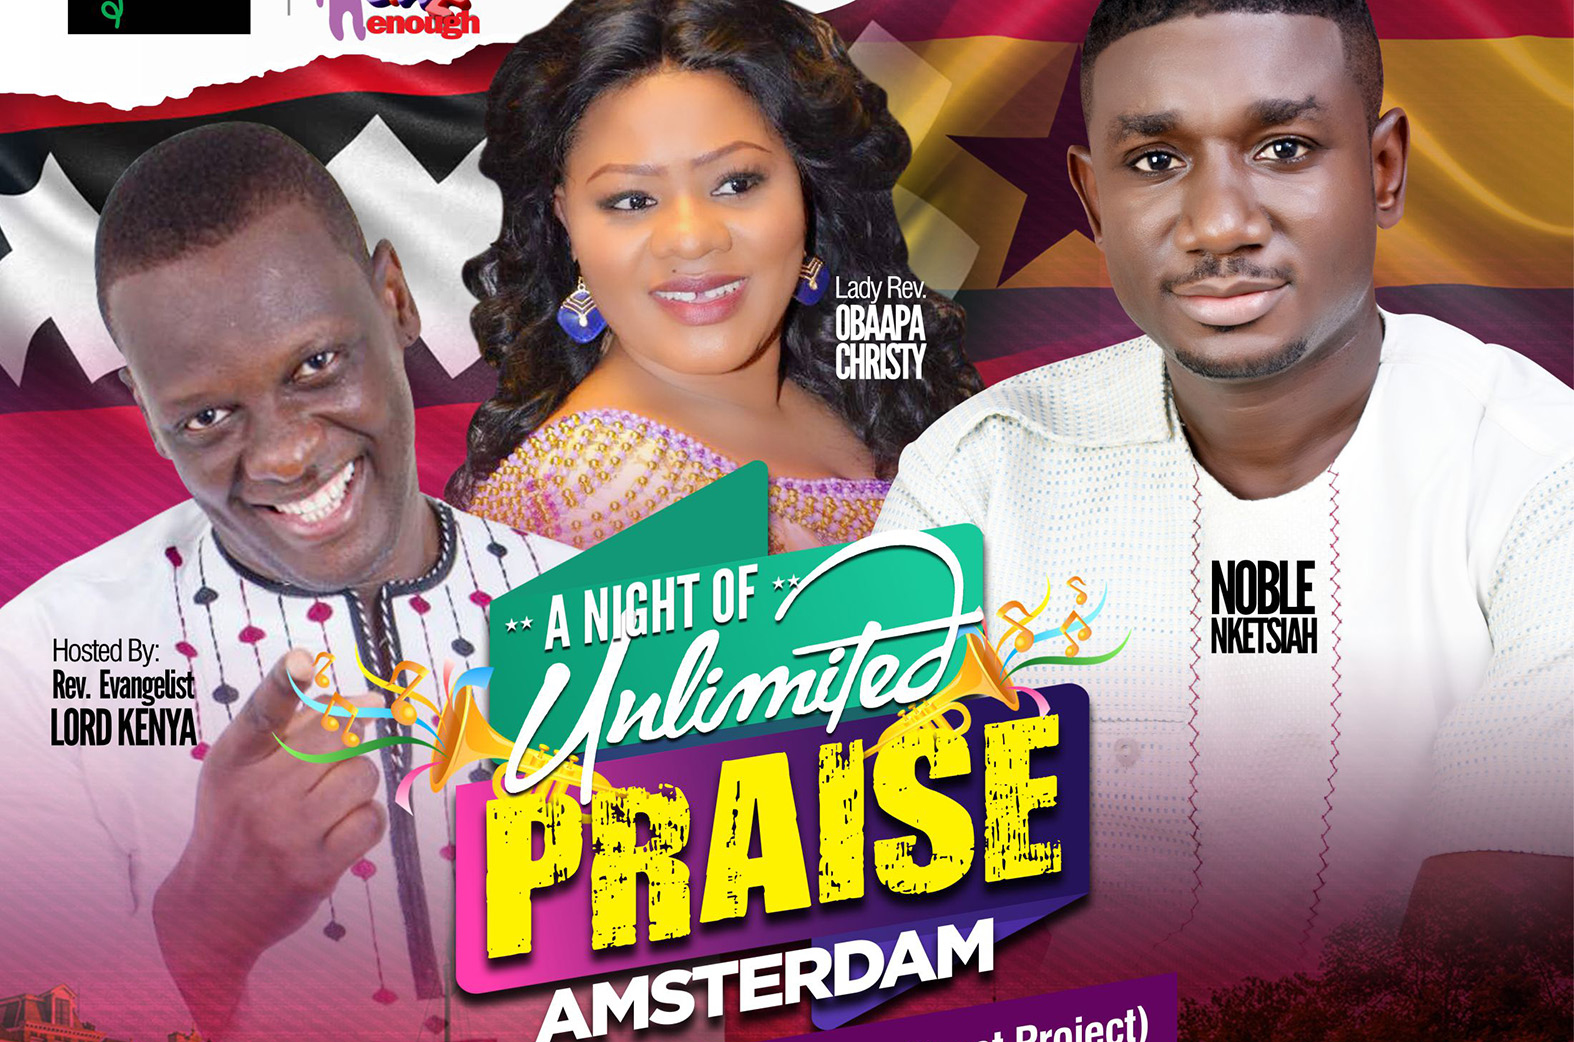 Obaapa Christy, Lord Kenya and Noble Nketsiah storm Europe